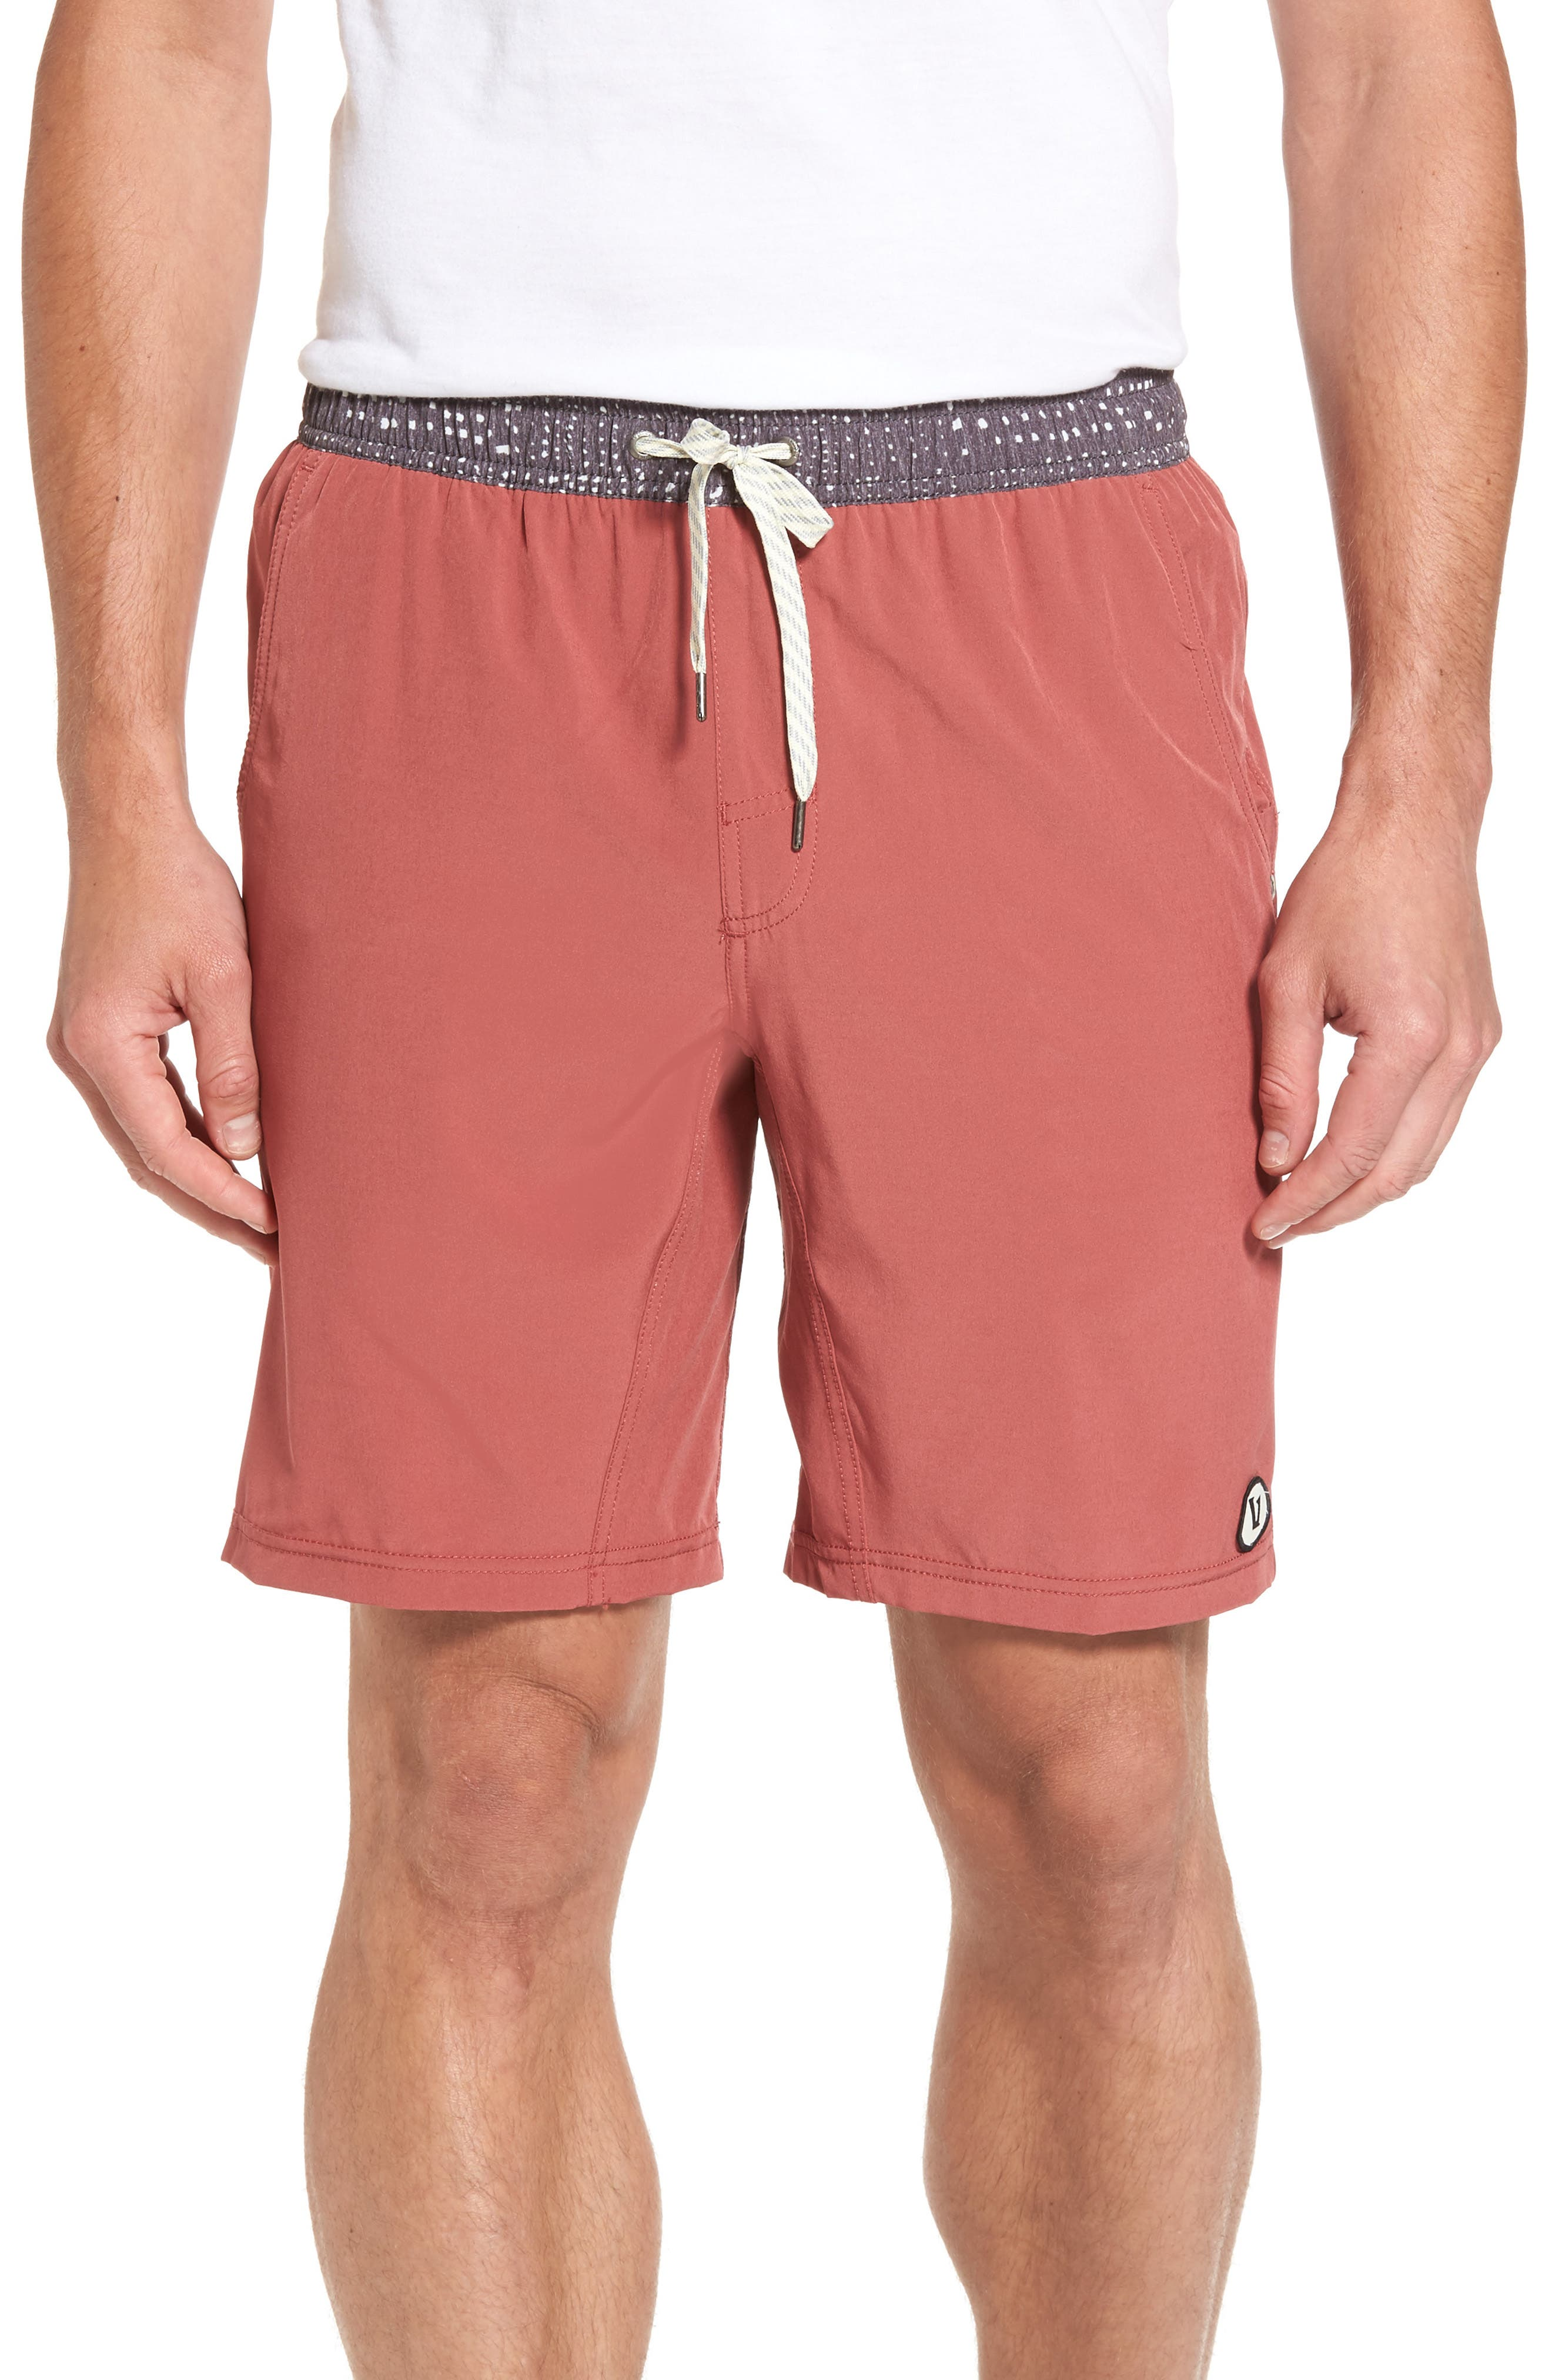 Kore Performance Shorts,                         Main,                         color, Saltwater Red